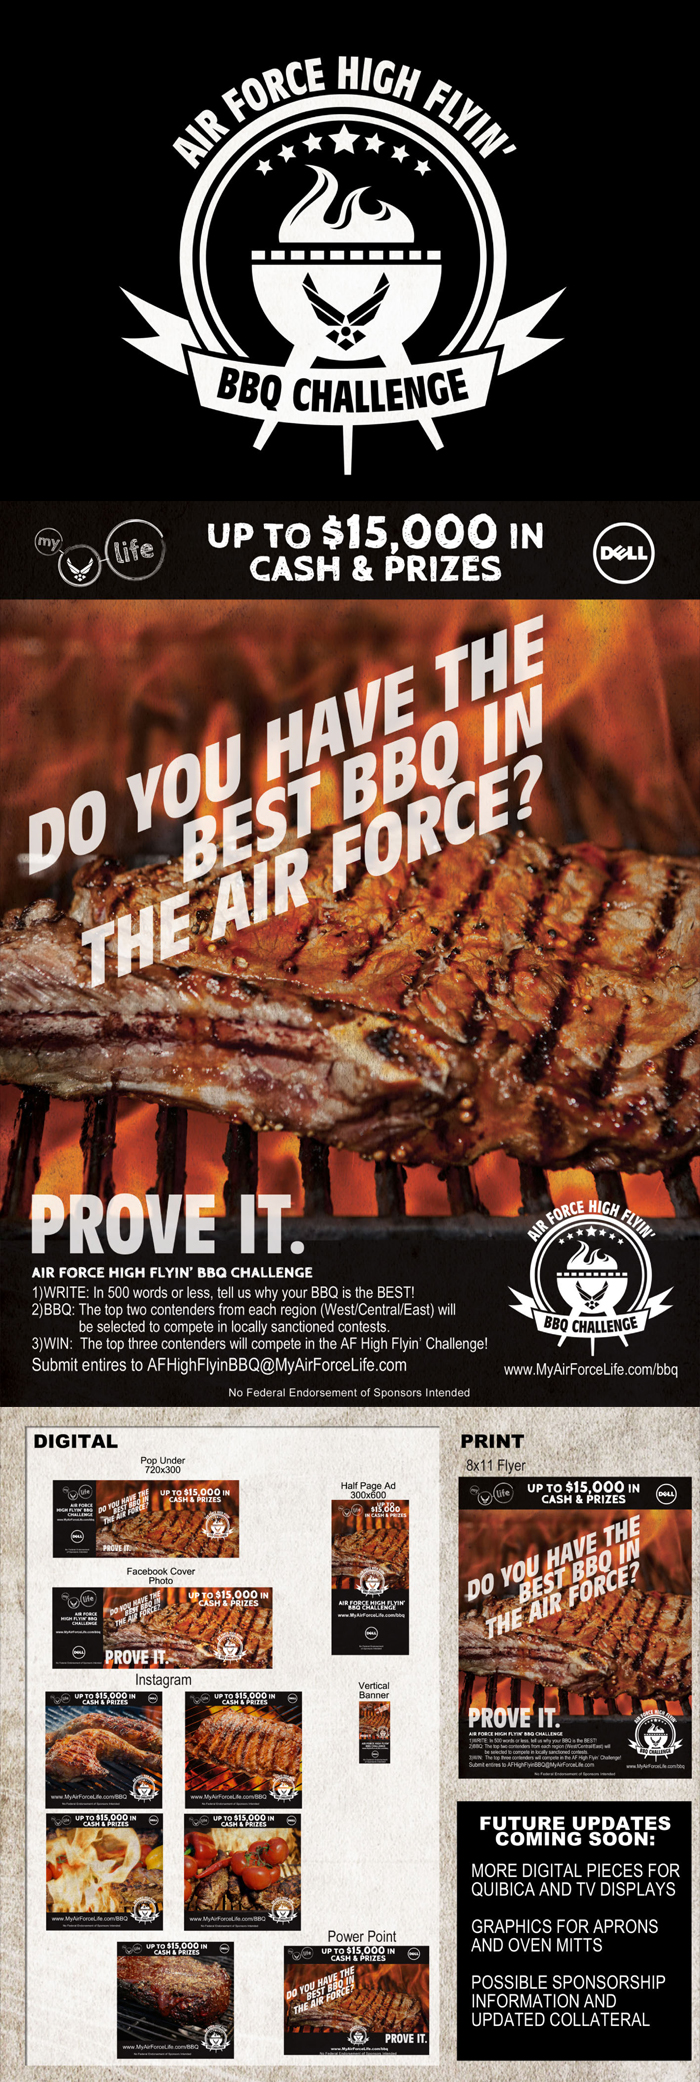 AF-High-Flyin-BBQ-Challenge-Collateral-Layout-1